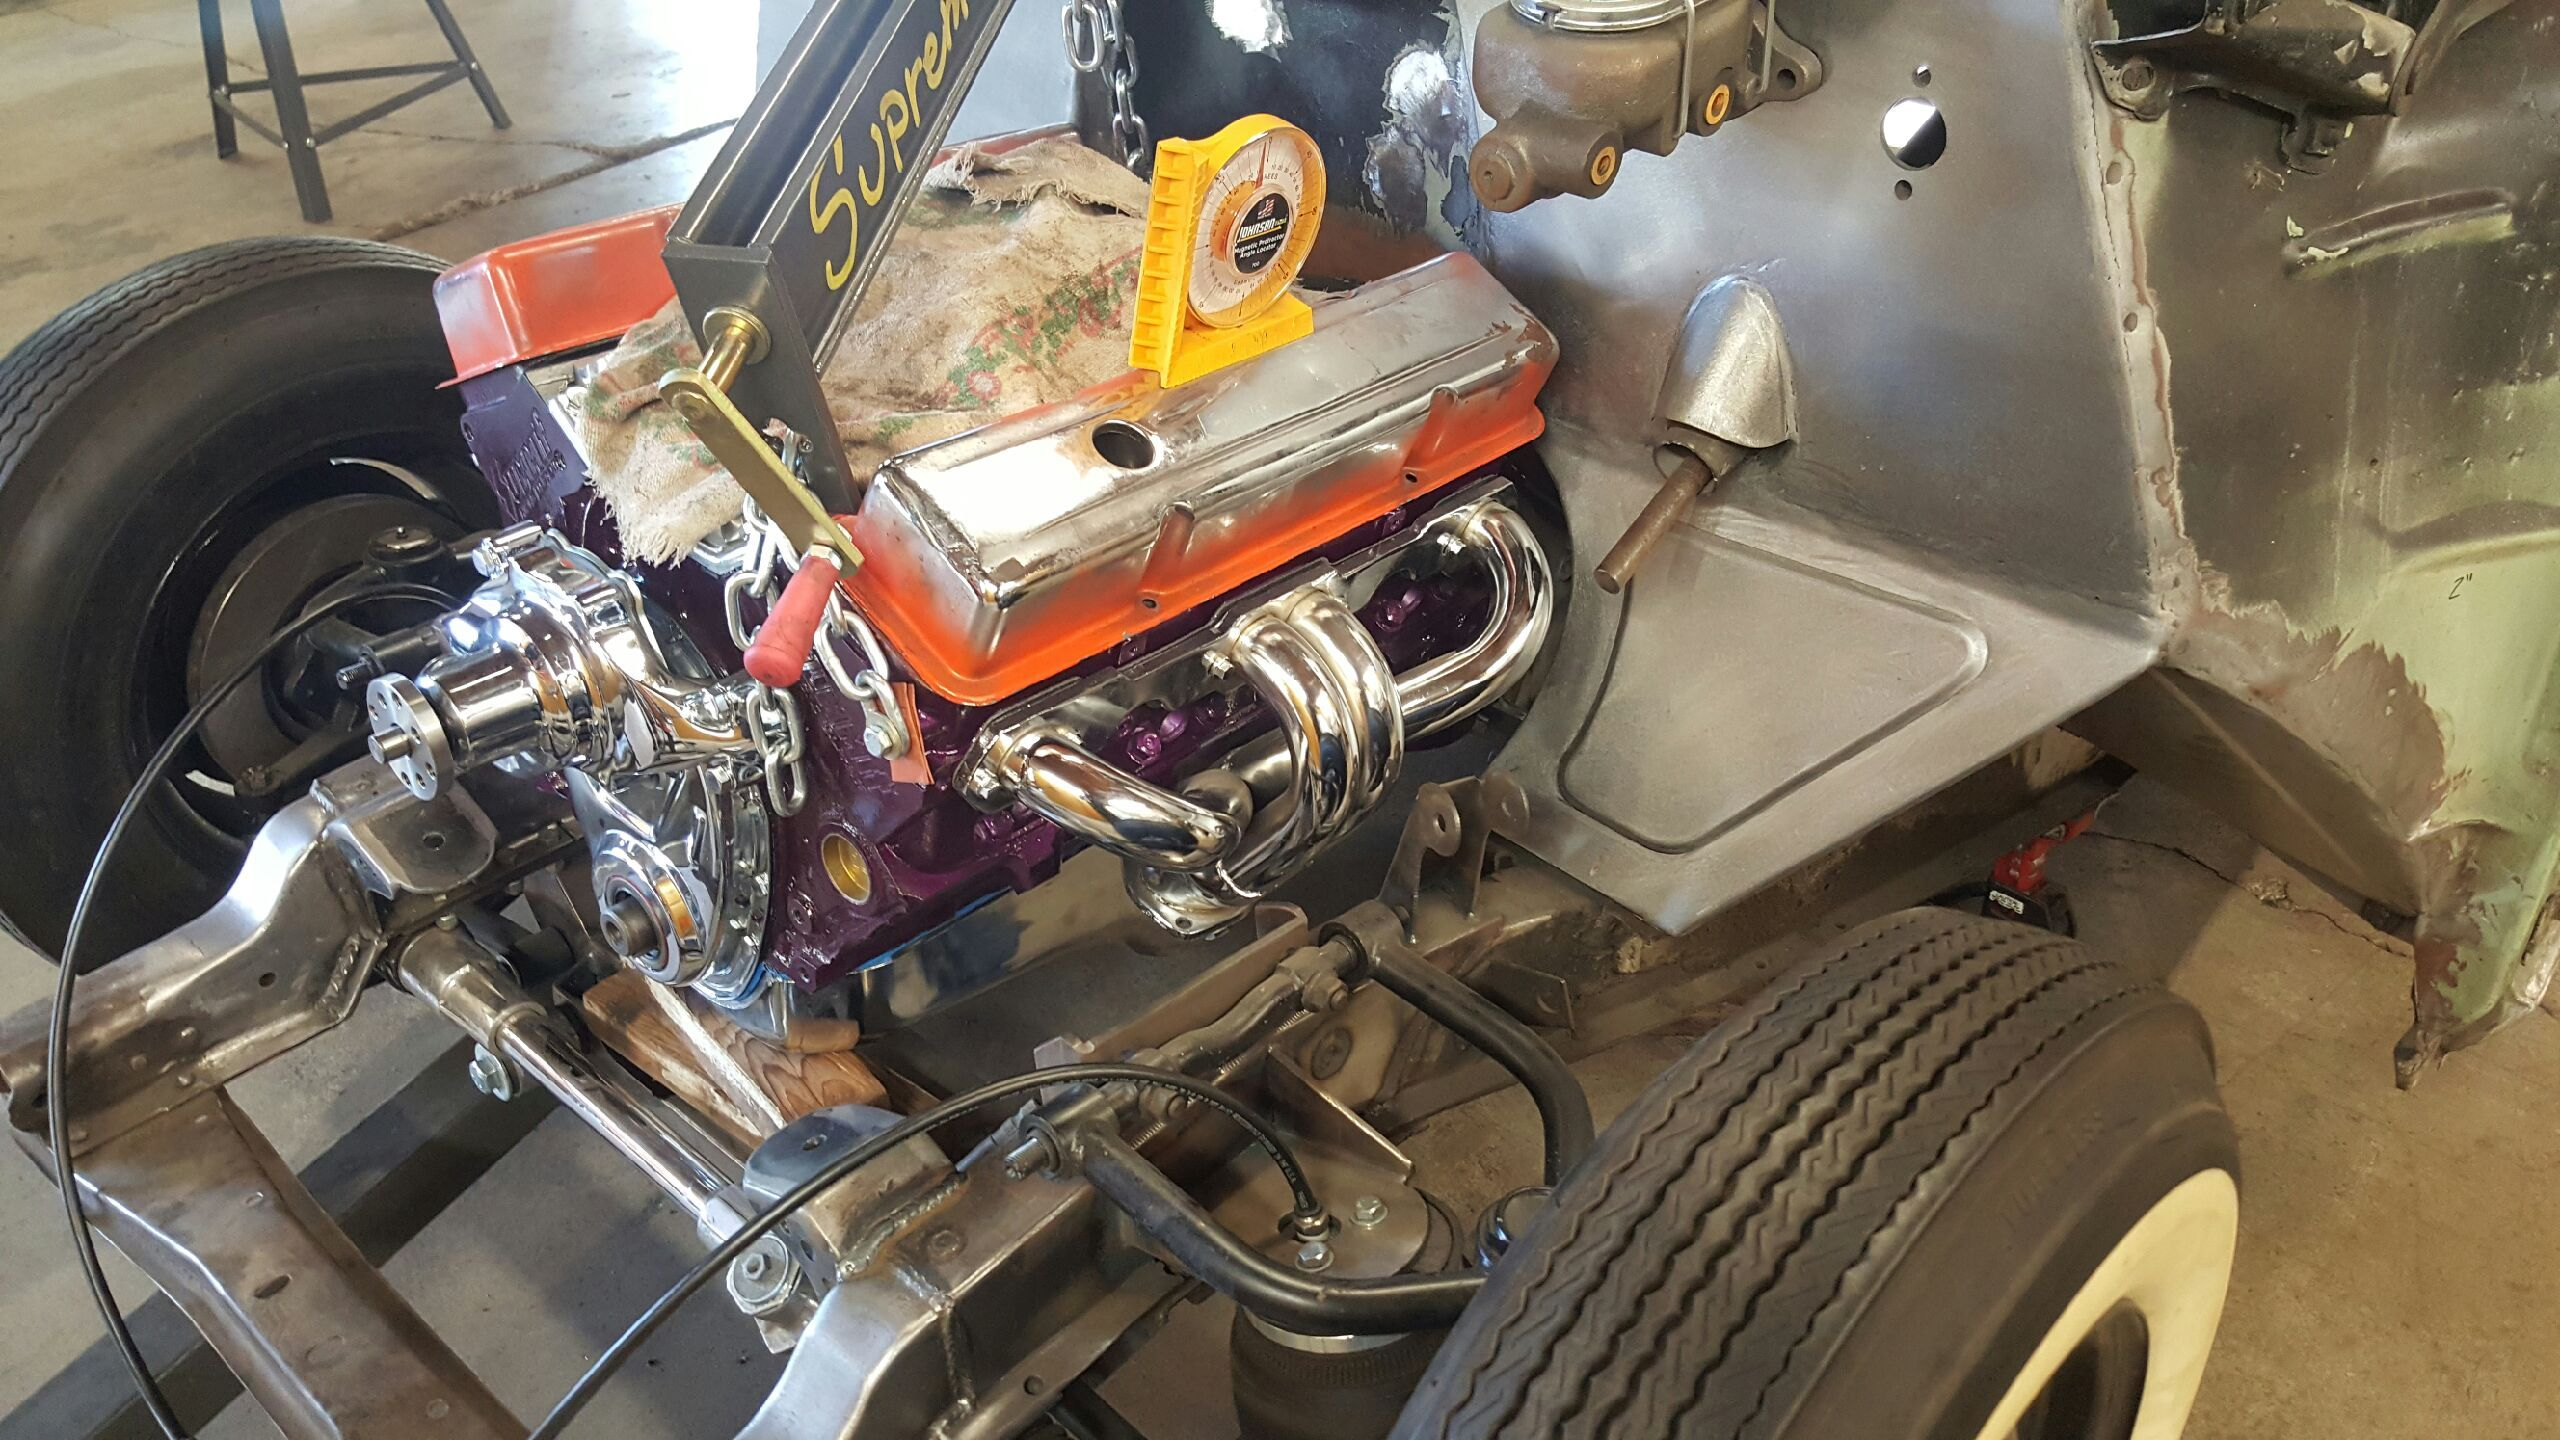 Pin By Ramiro Morales On From Day 1 And Counting 1950 Chevy Coupe Chevy Coupe Sheet Metal